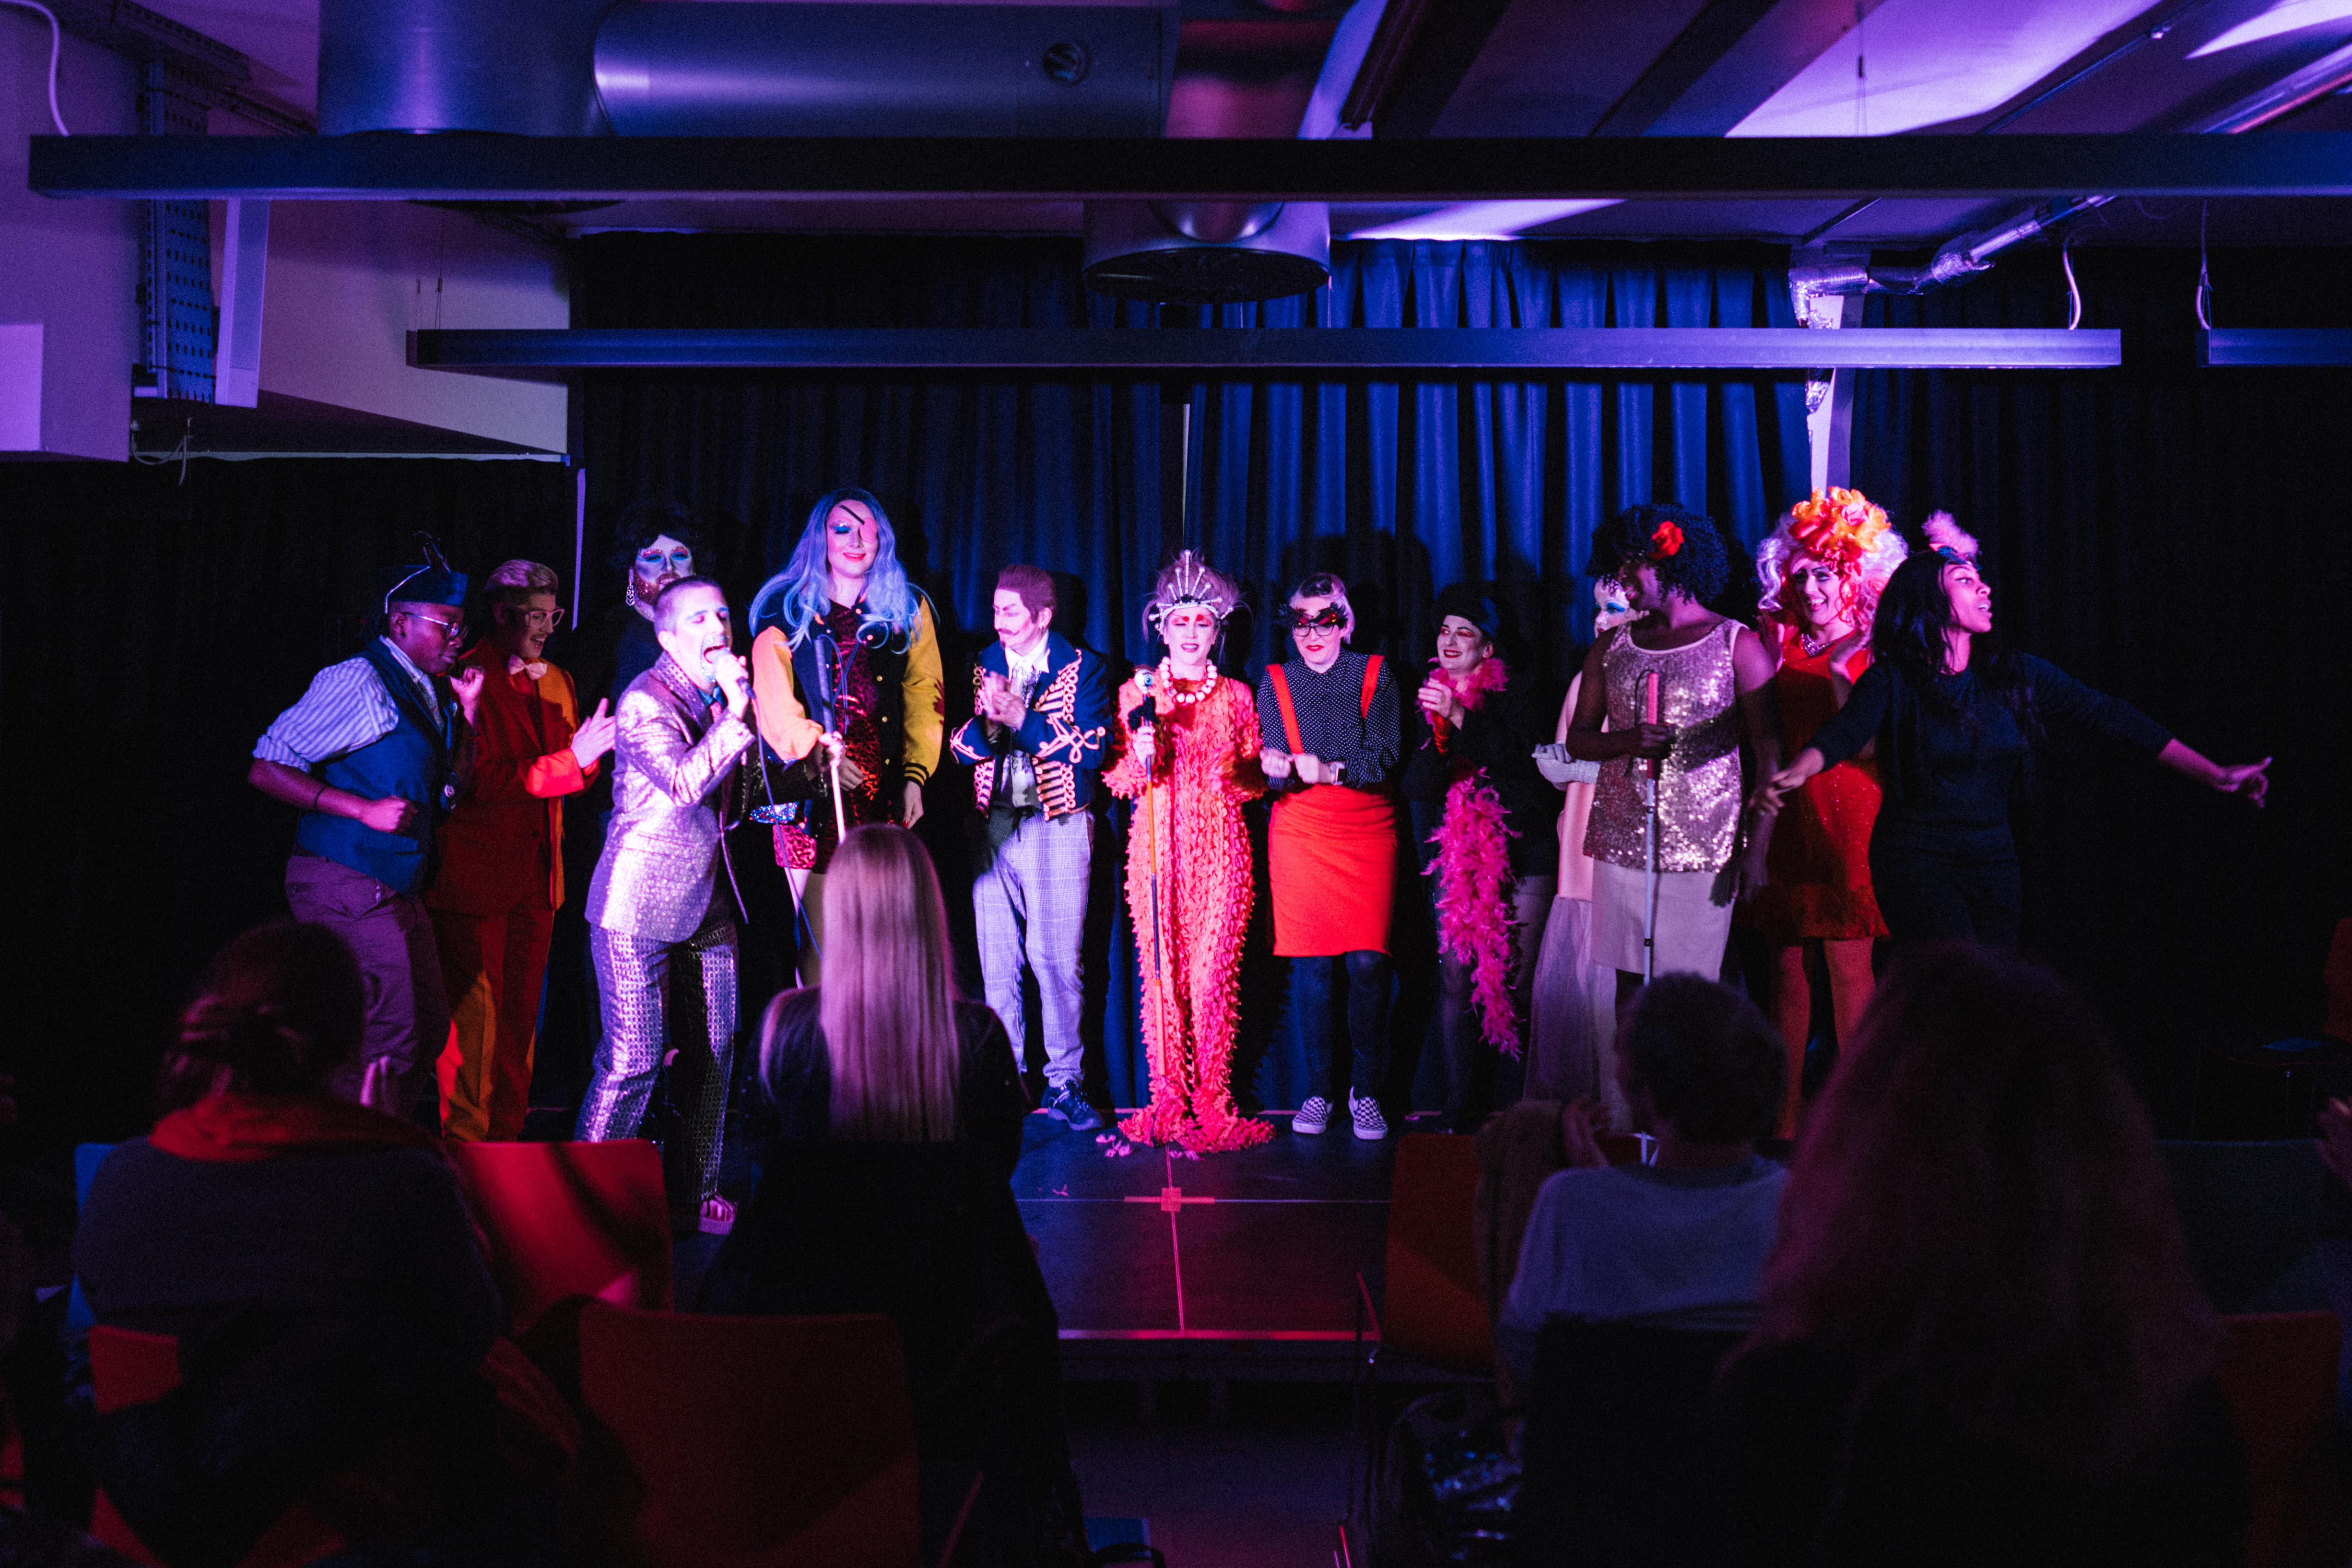 The drag performers standing side by side on the stage, some of them clapping. A white drag king stands on the left singing into the microphone